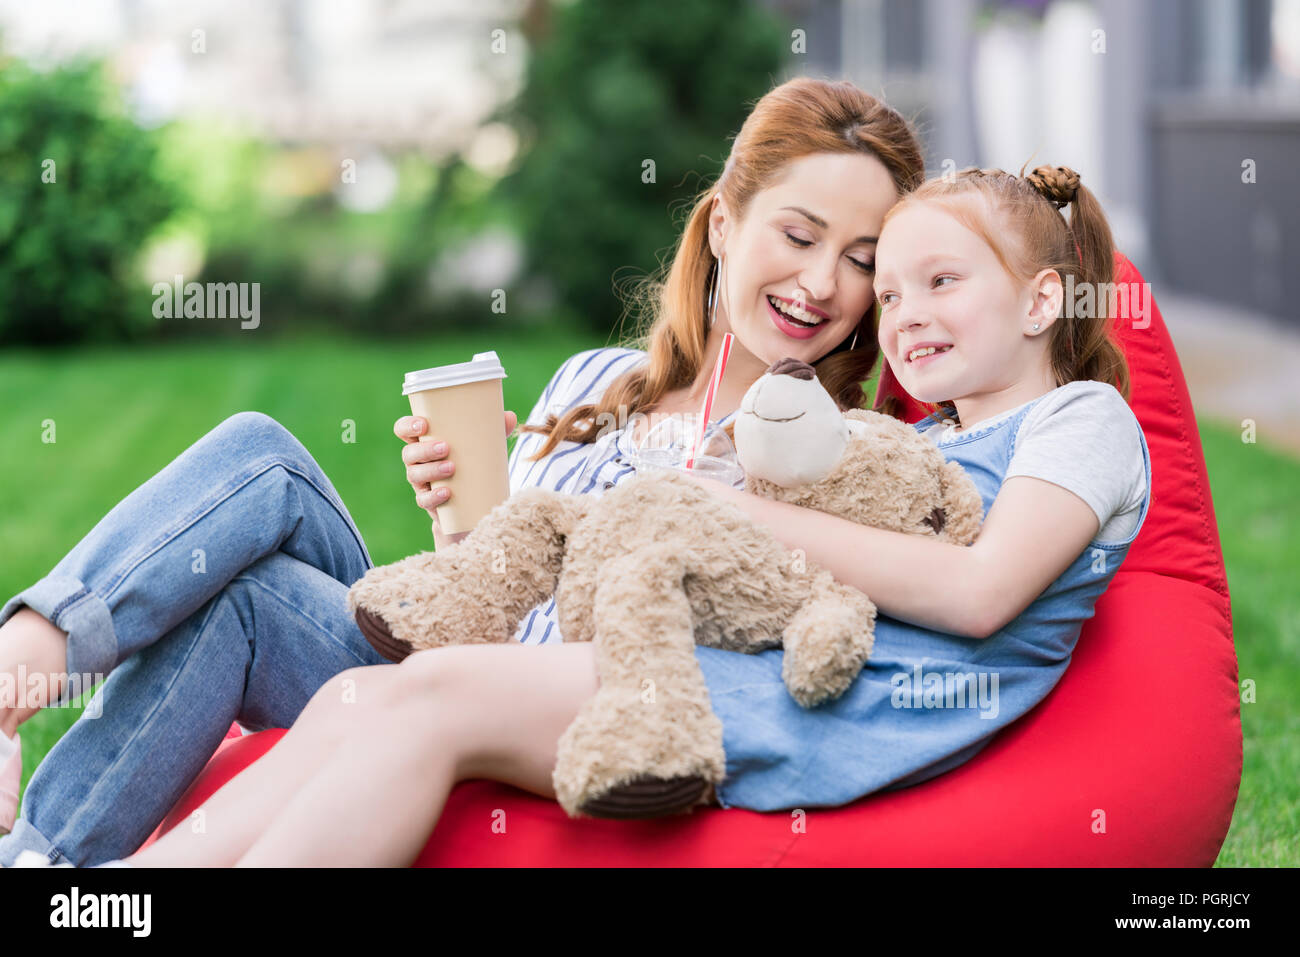 smiling mother with coffee to go and daughter with teddy bear resting on bean bag chair together - Stock Image